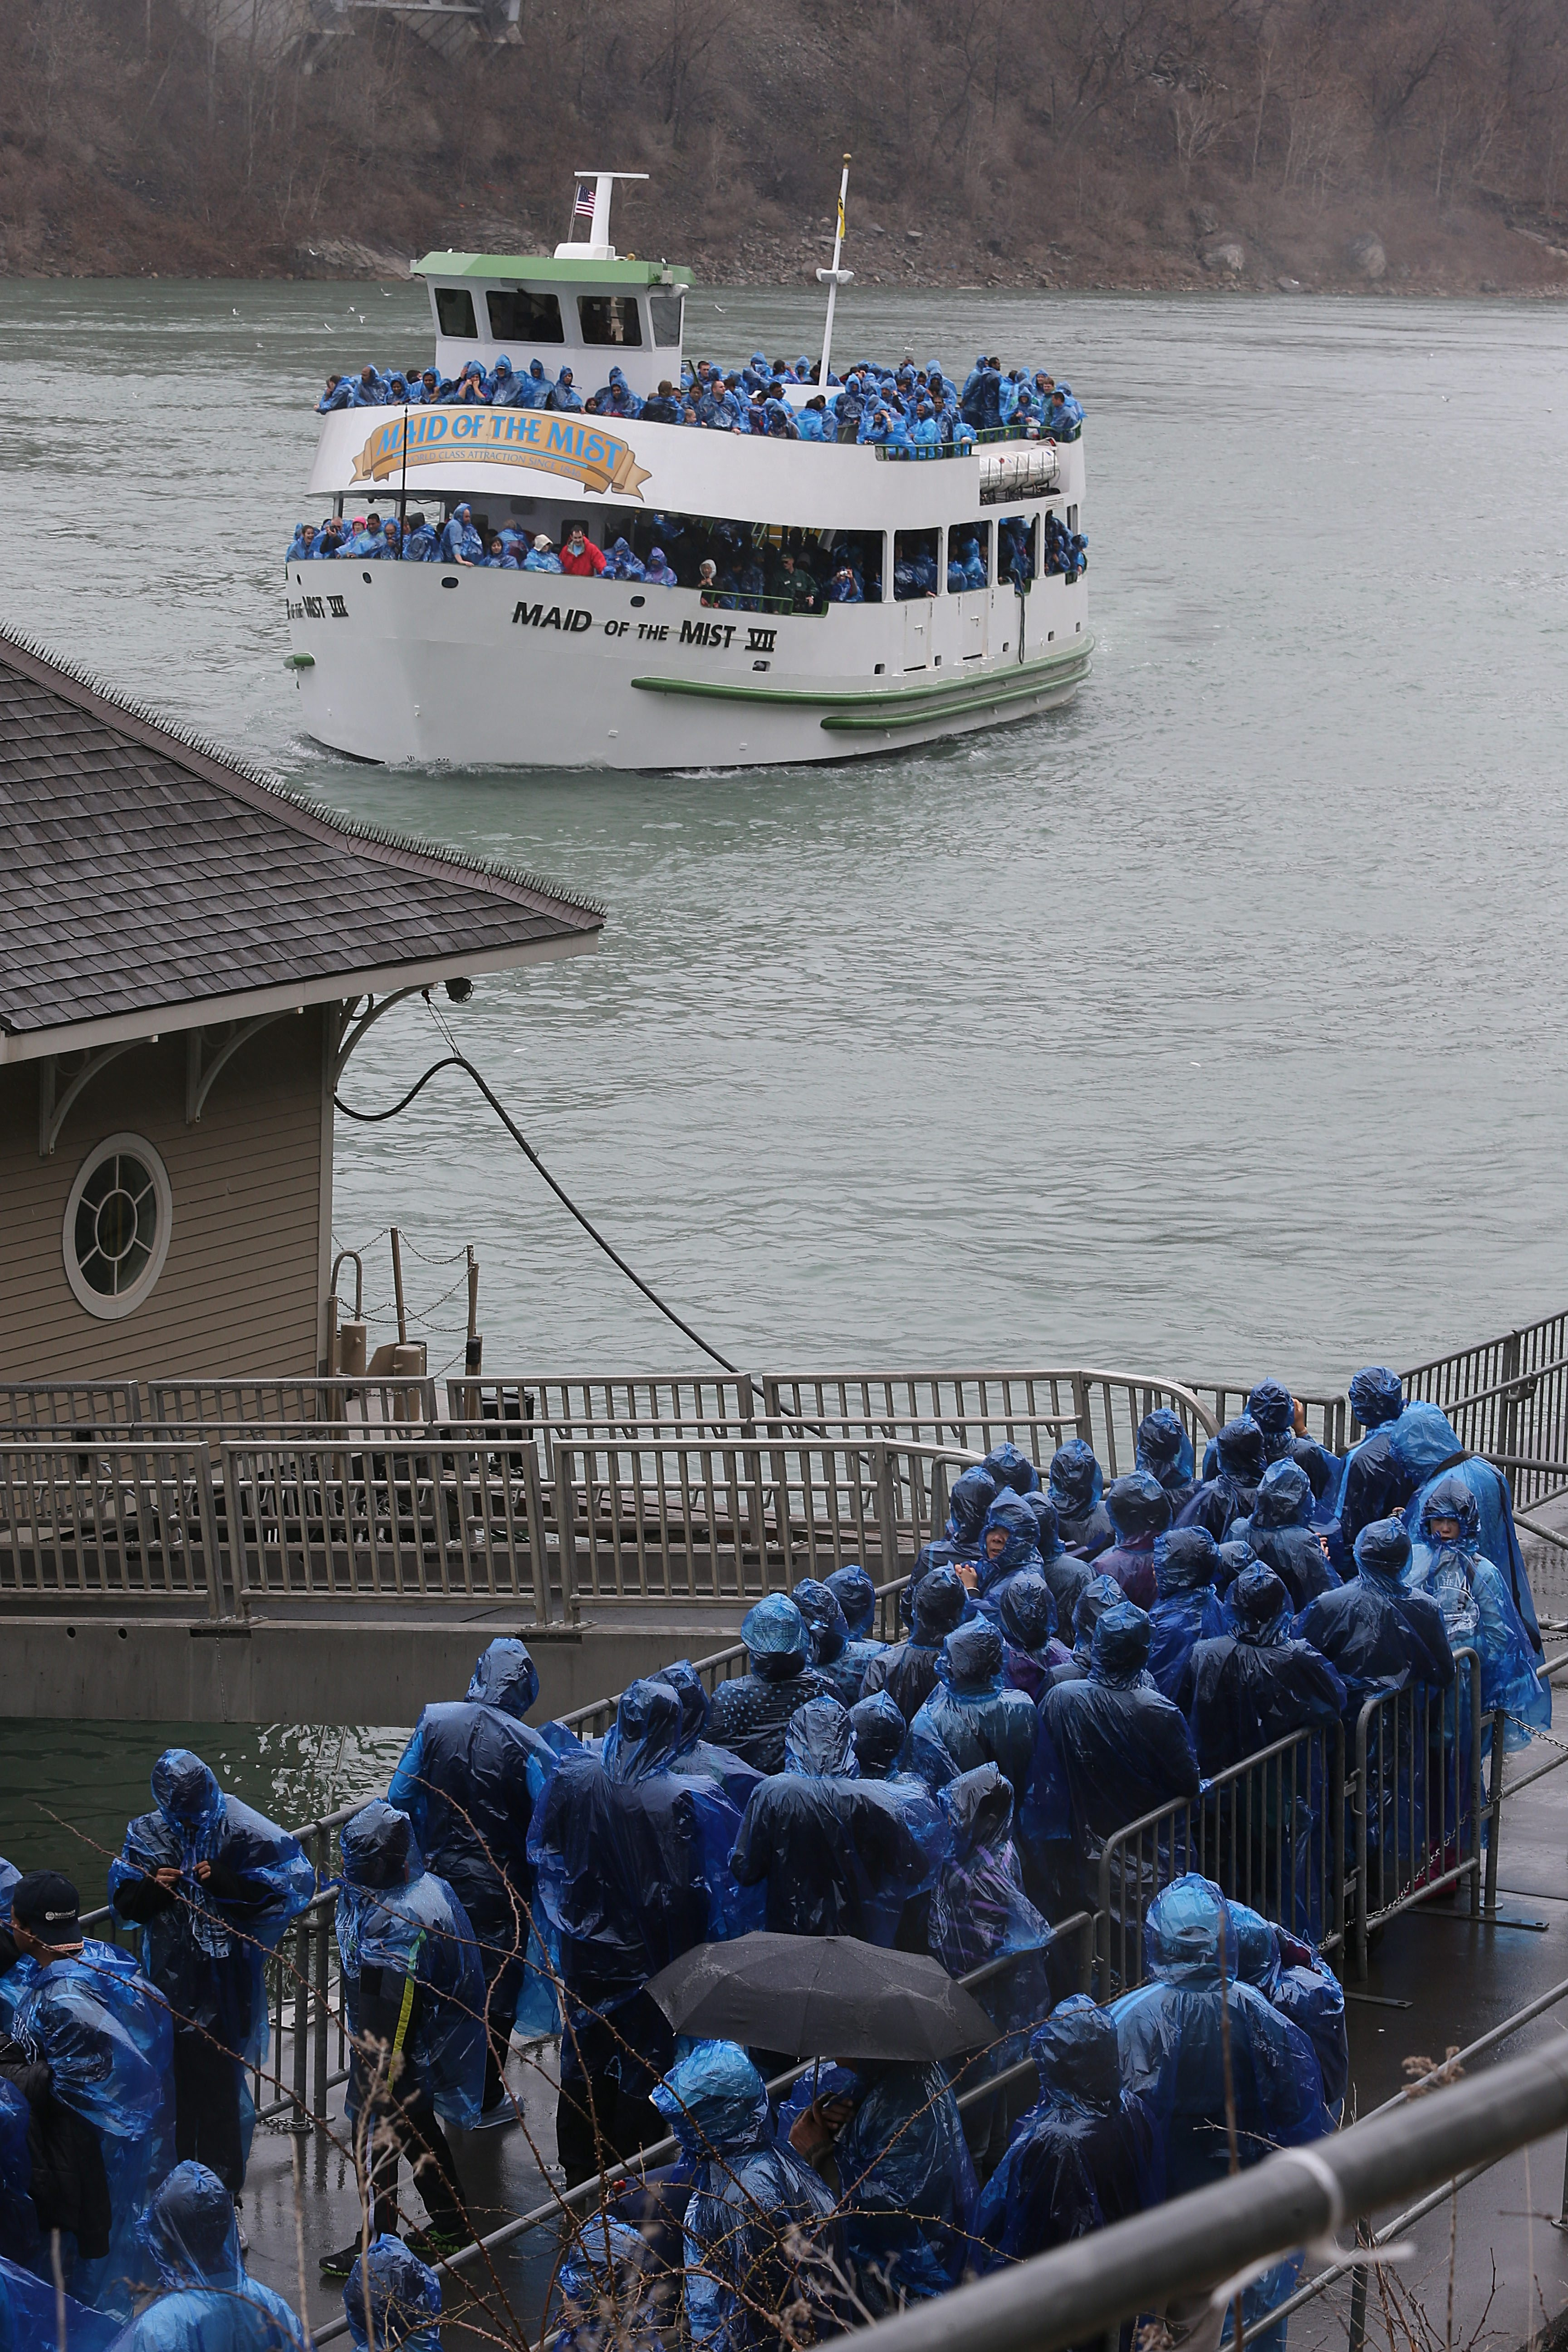 The Maid of the Mist VII returns to the dock after completing its first trip of the season at Niagara Falls State Park, as the next group of passengers waits to board, Friday, April 19, 2013.  The Maid of the Mist VII is the latest addition to the Maid fleet. (Charles Lewis/Buffalo News)